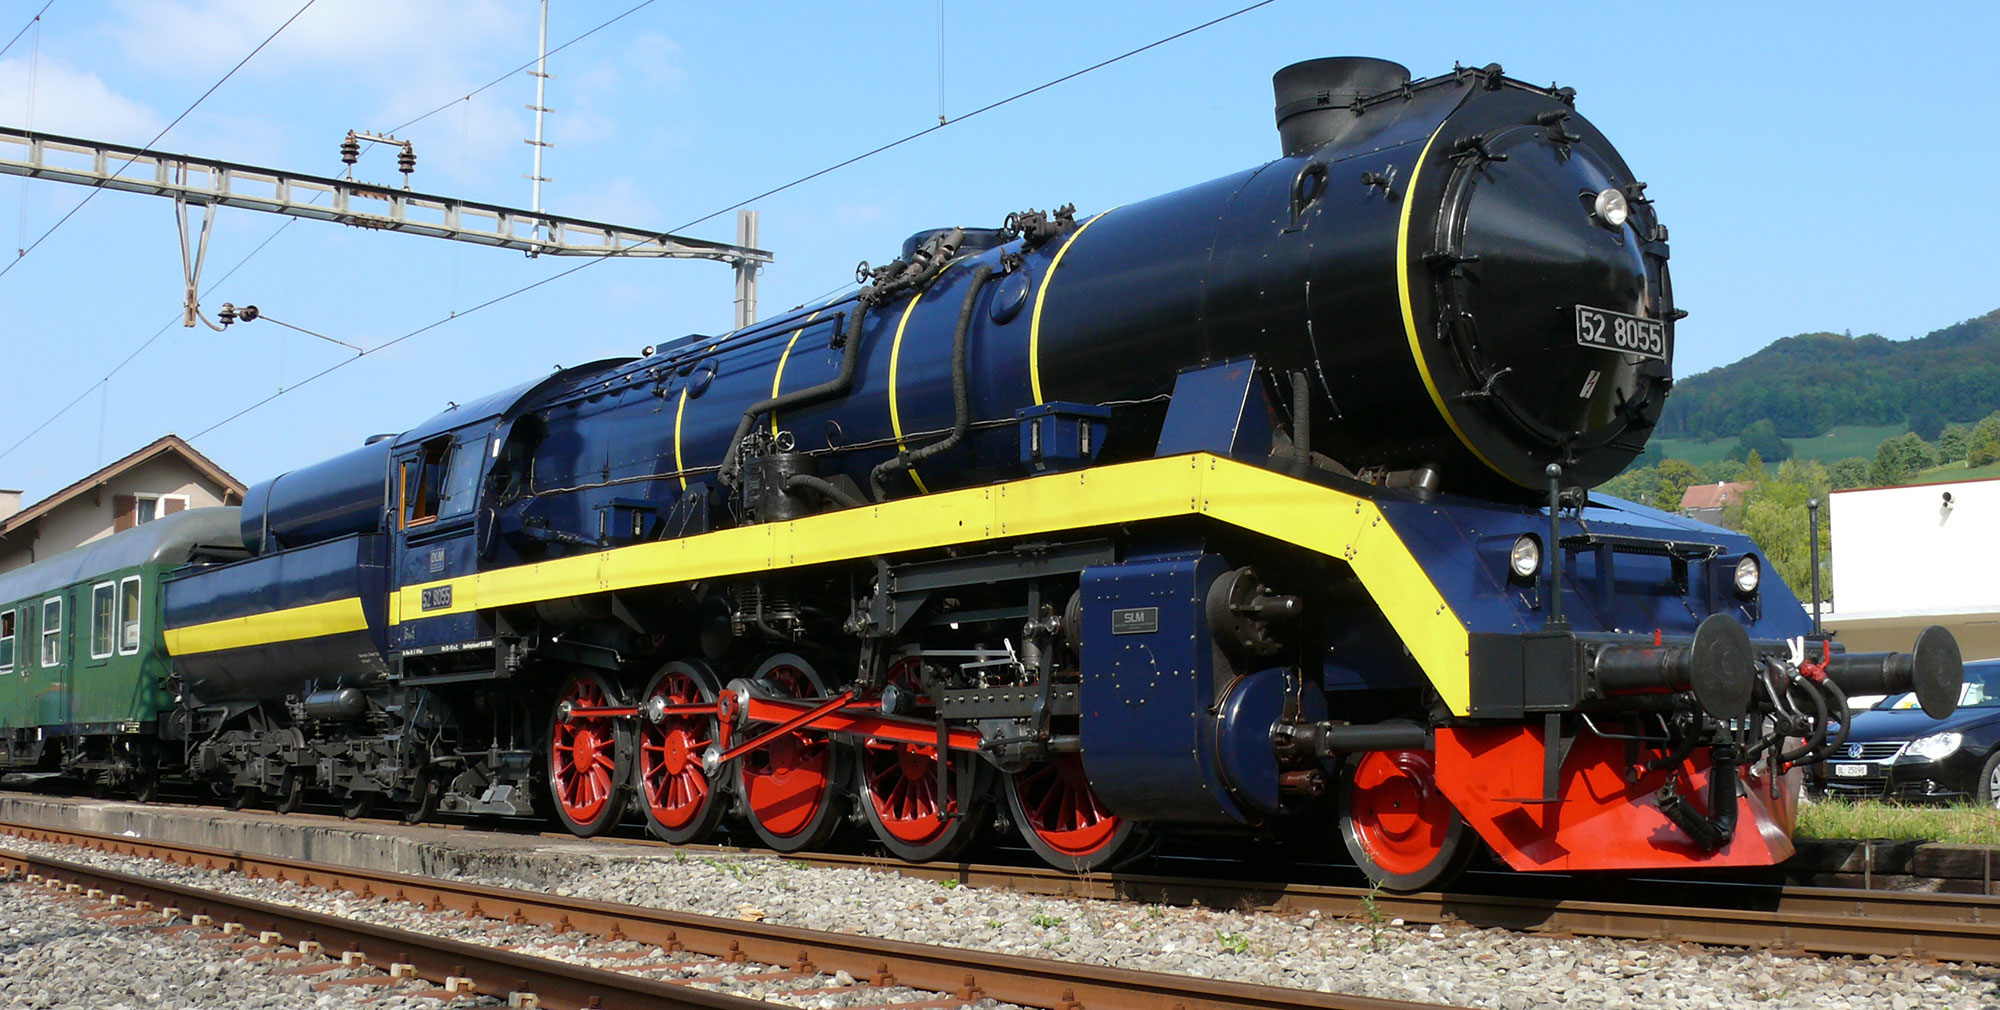 Steam locomotive modernised by Dampflokomotiv- und Maschinenfabrik DLM of Winterthur,